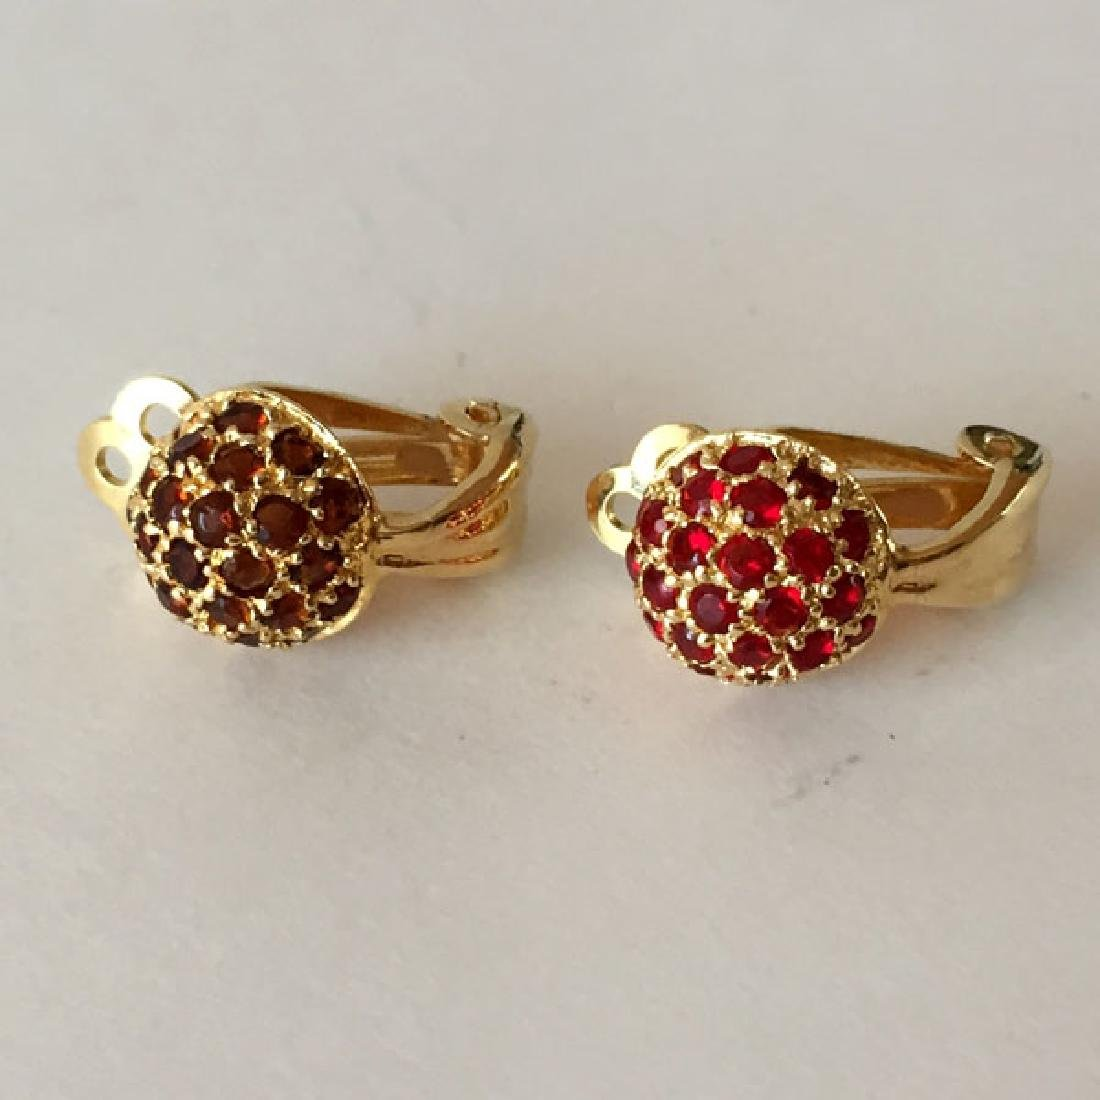 Gold plated sterling silver dome shaped ear clips with - 5